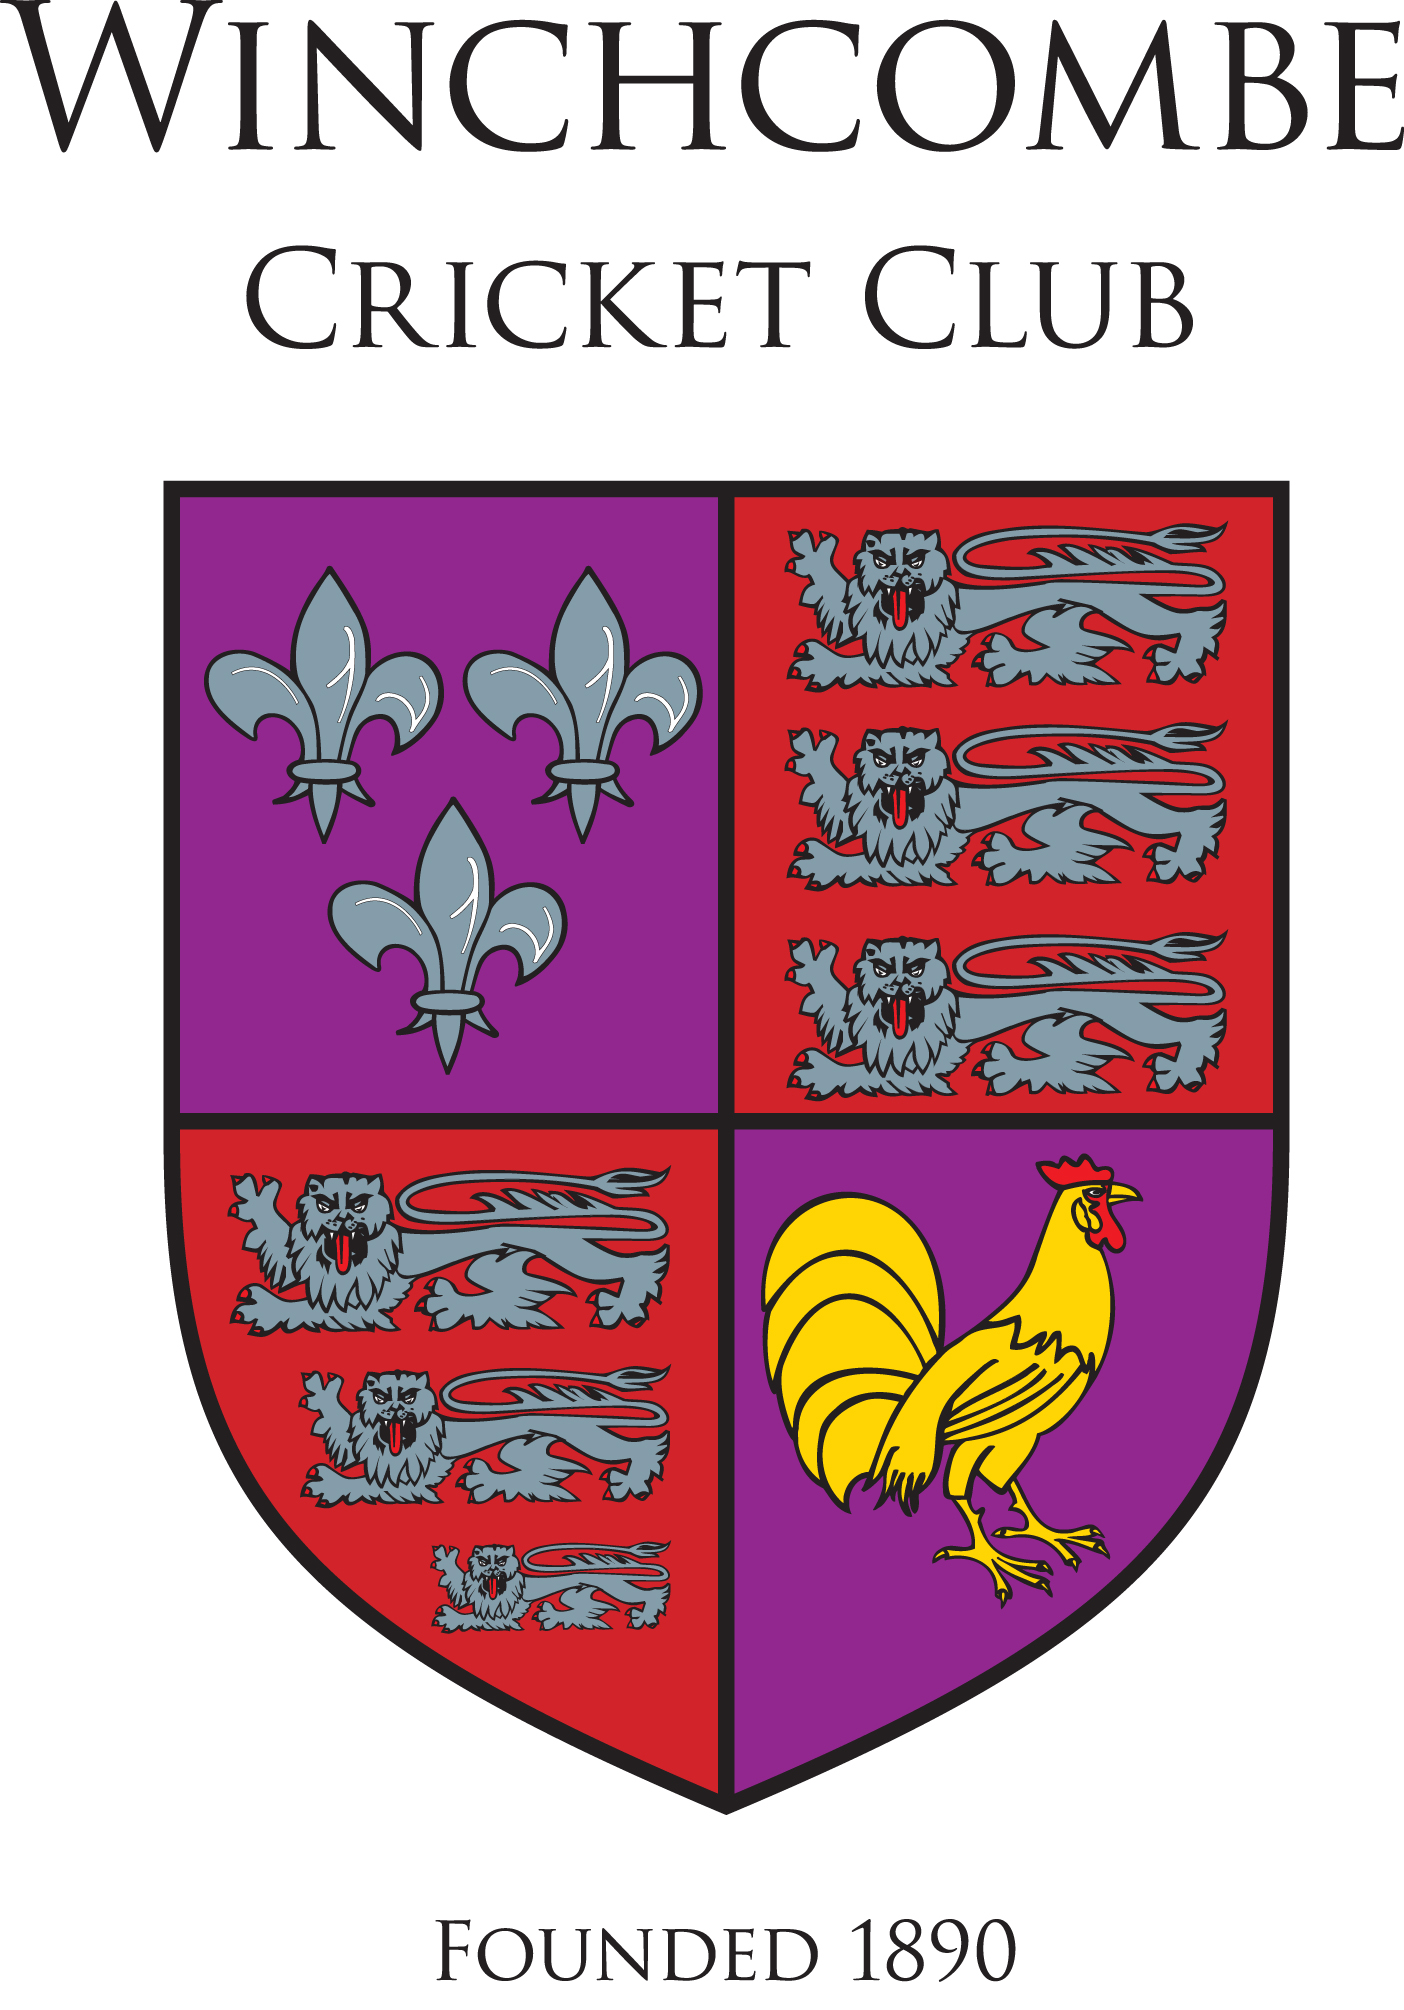 Access to the Cricket Club